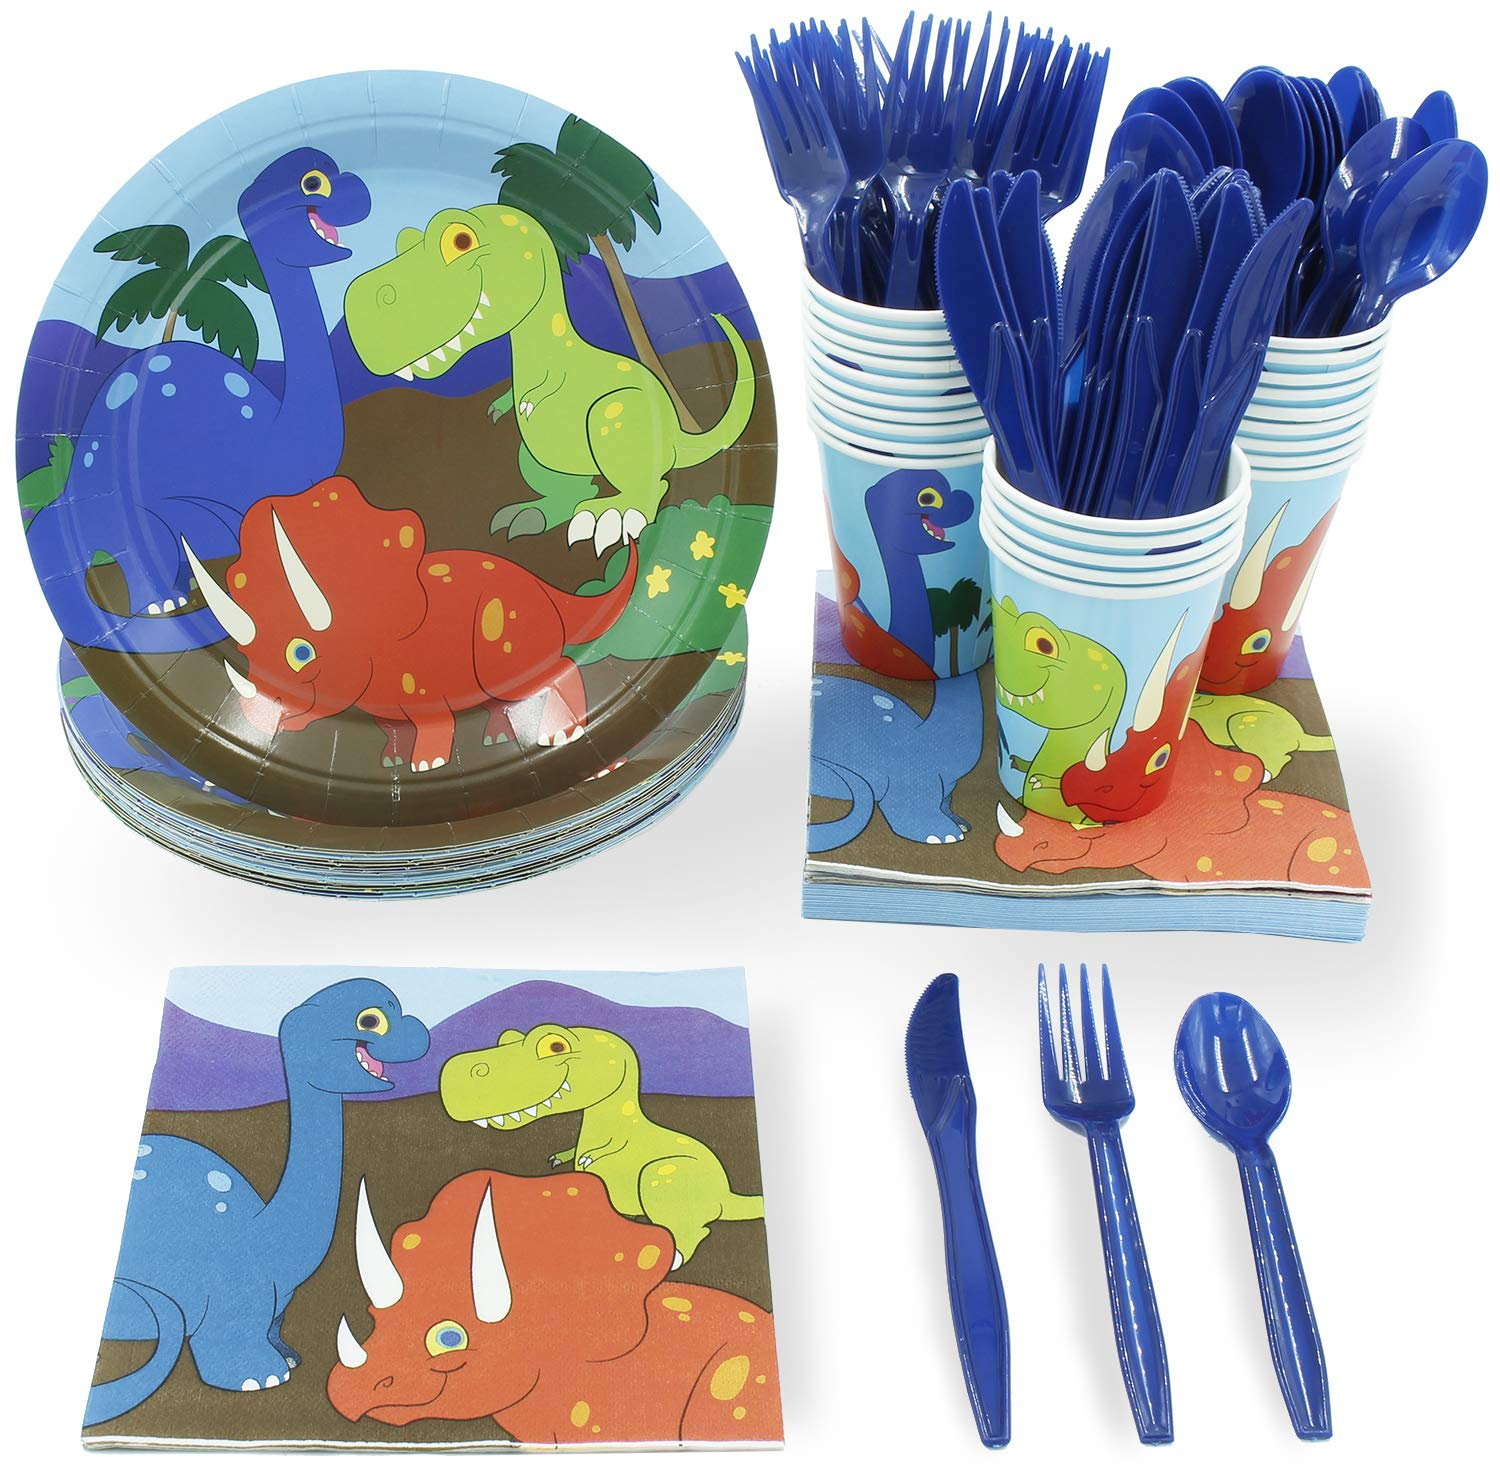 Dinosaur Party Bundles for 24 Guests